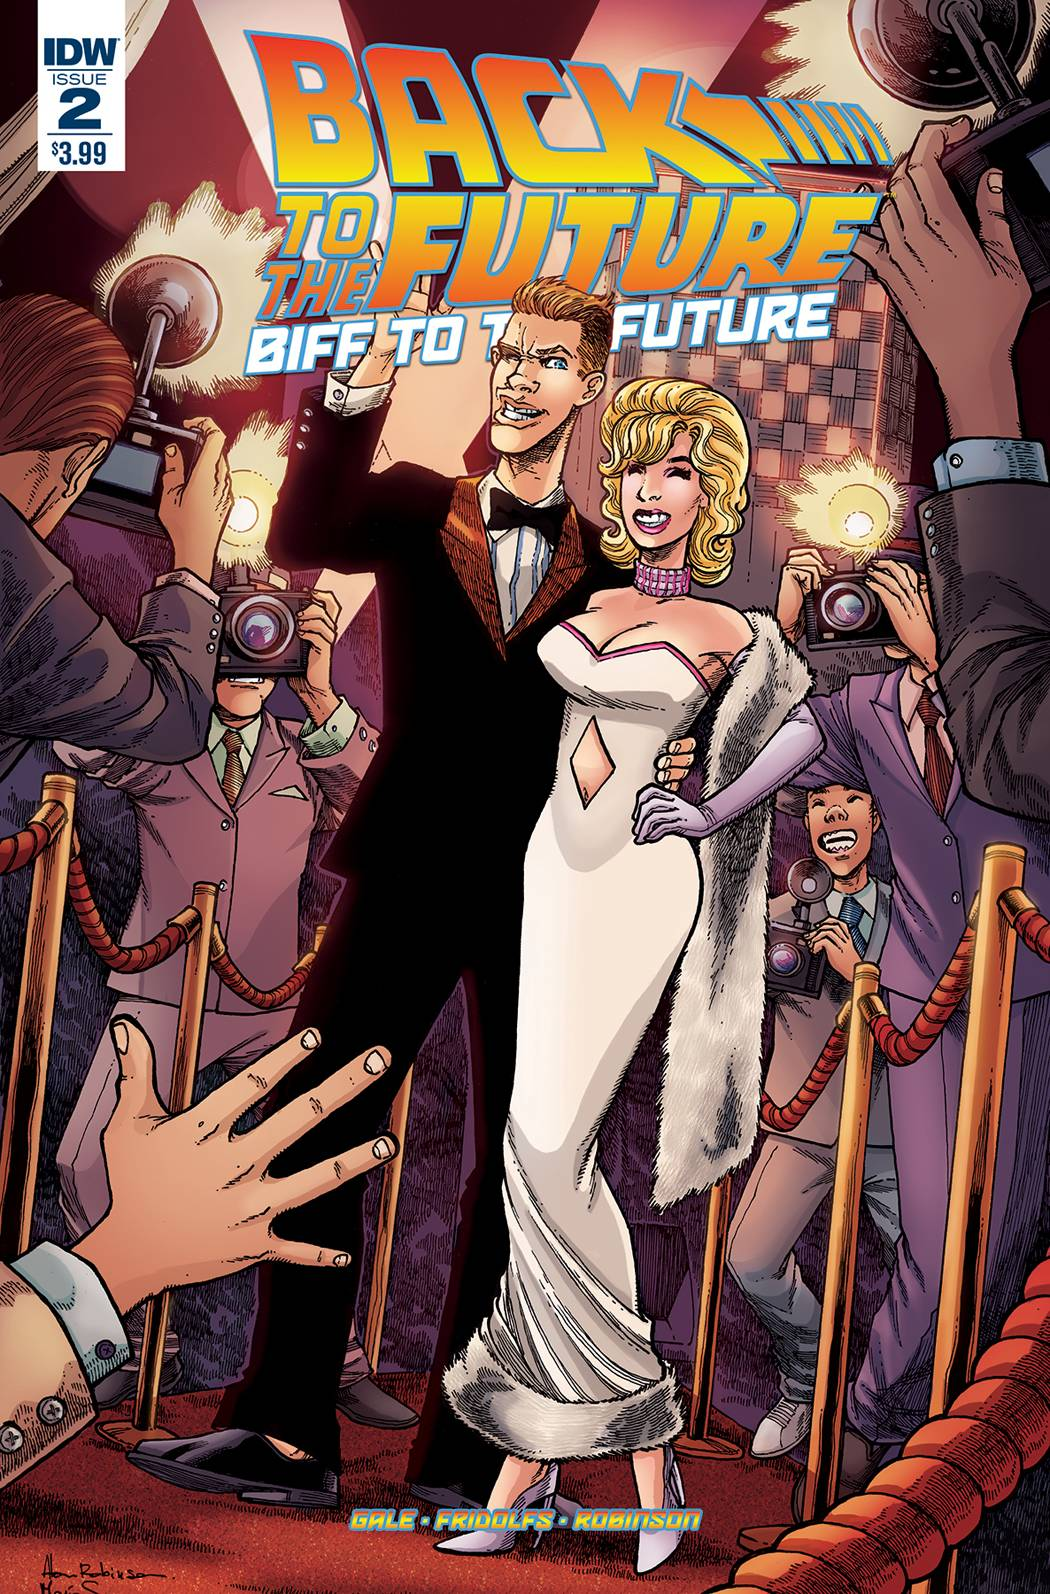 BACK TO THE FUTURE BIFF TO THE FUTURE #2